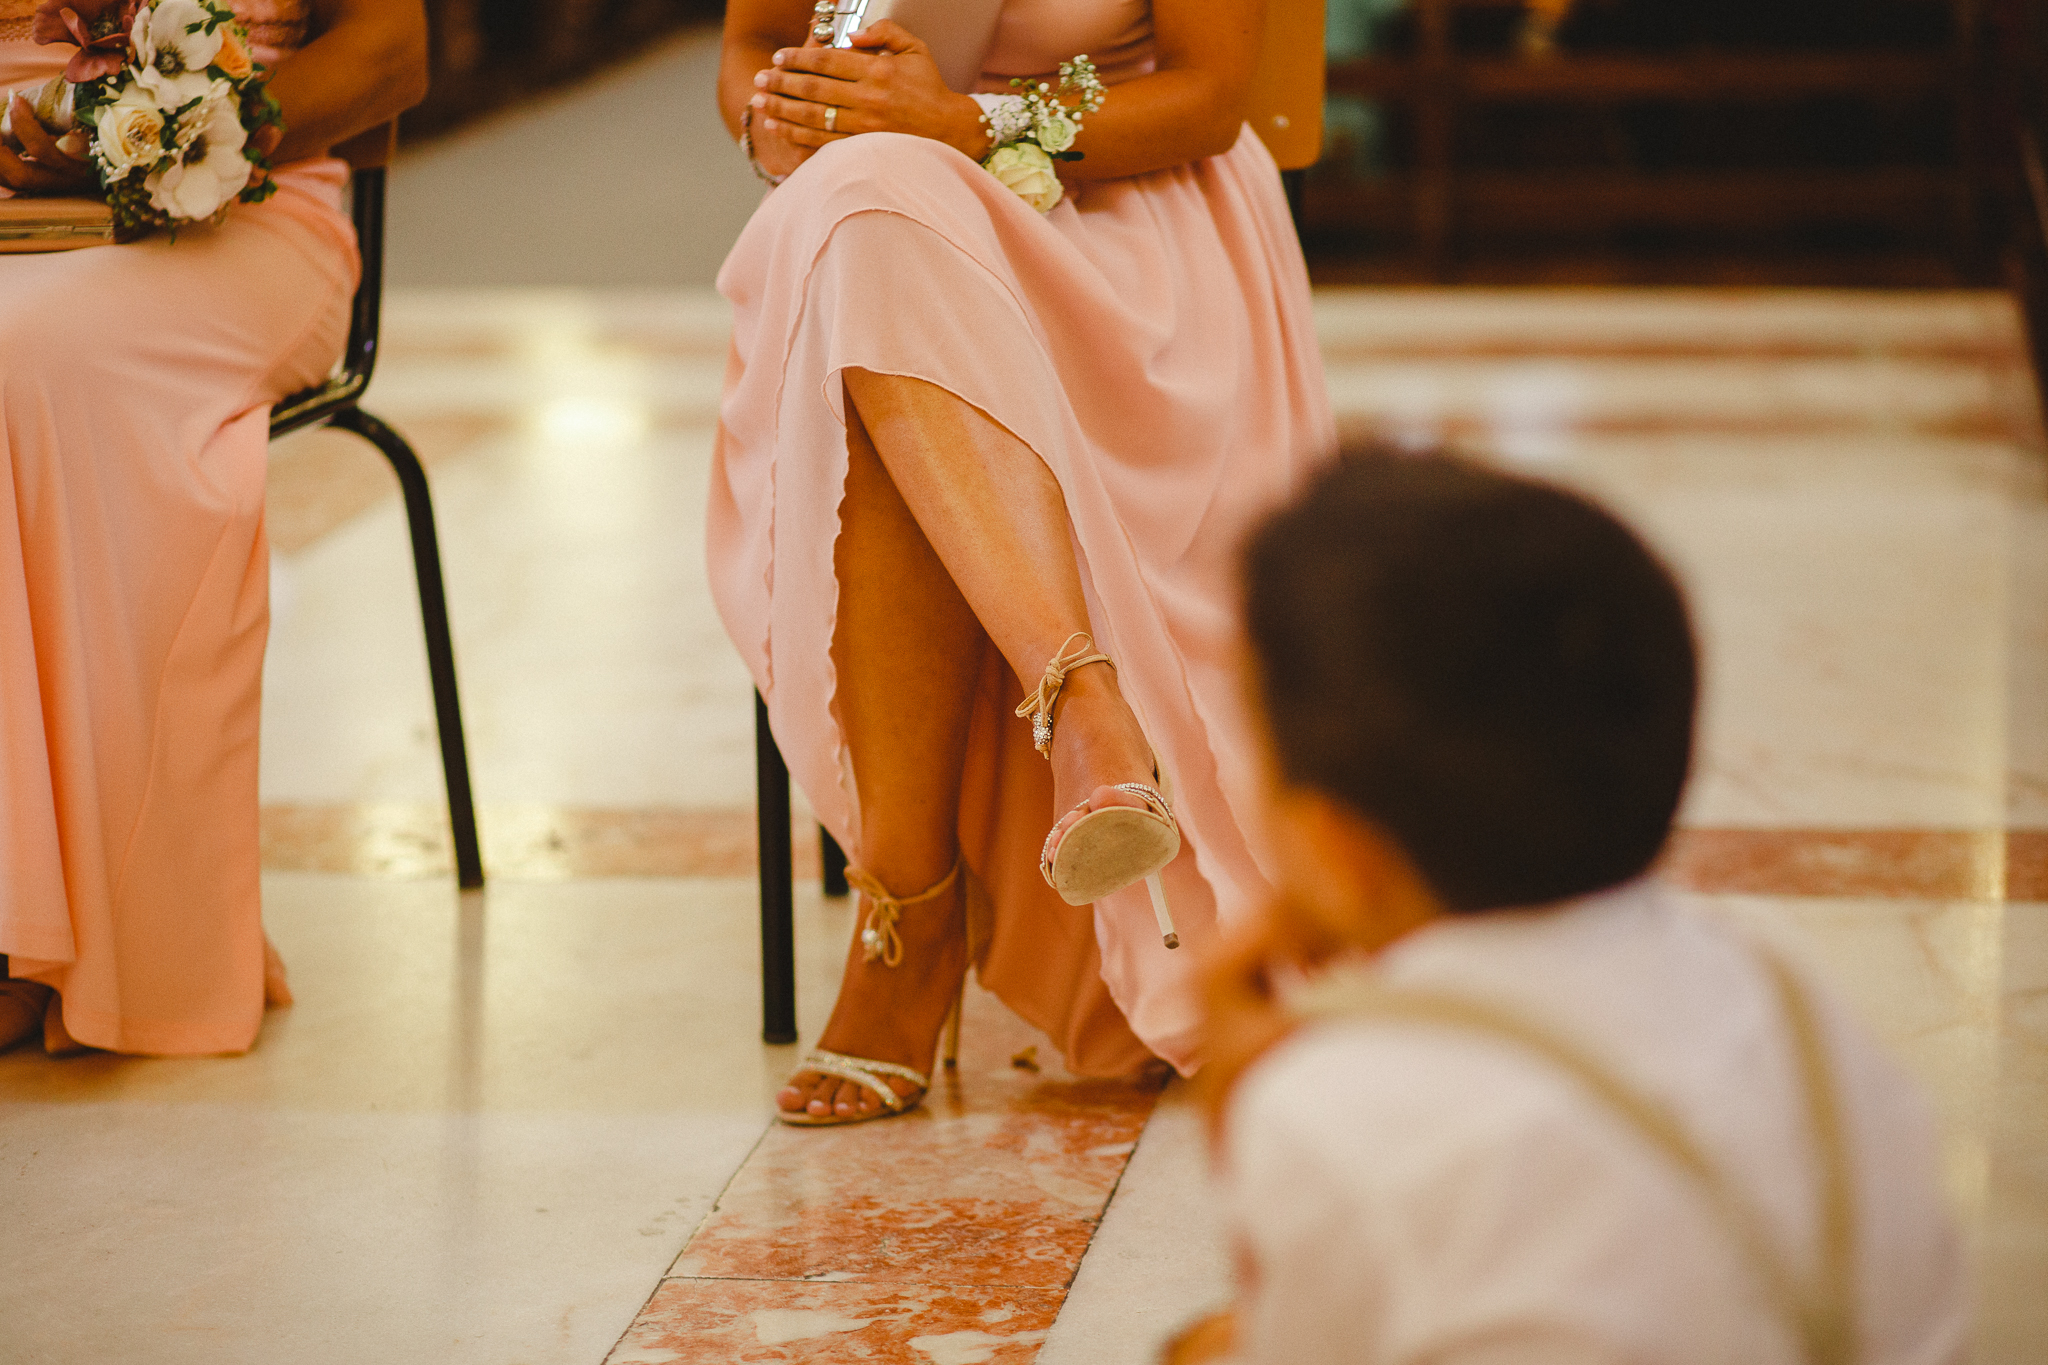 Wedding guest sitting in church in light pink dress and elegant high heels.